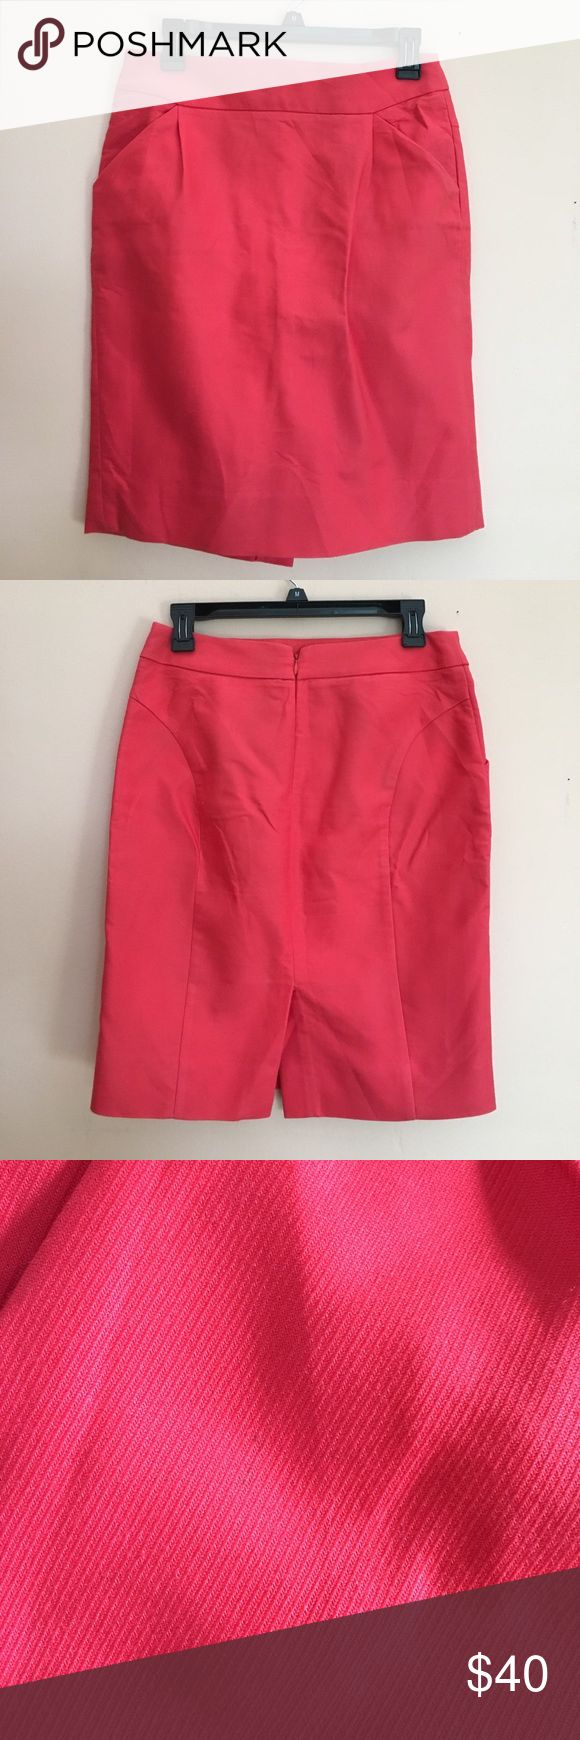 "J Crew Coral Pencil Skirt Size 4. Just took this piece out of storage and it no longer fits! My loss is your gain :) Small pen mark on front but may come out with wash/proper care. Very small/unnoticeable when worn. Please see picture 3. Back zipper. 2 front pockets. Approx. 20"" in length. J. Crew Skirts Midi"